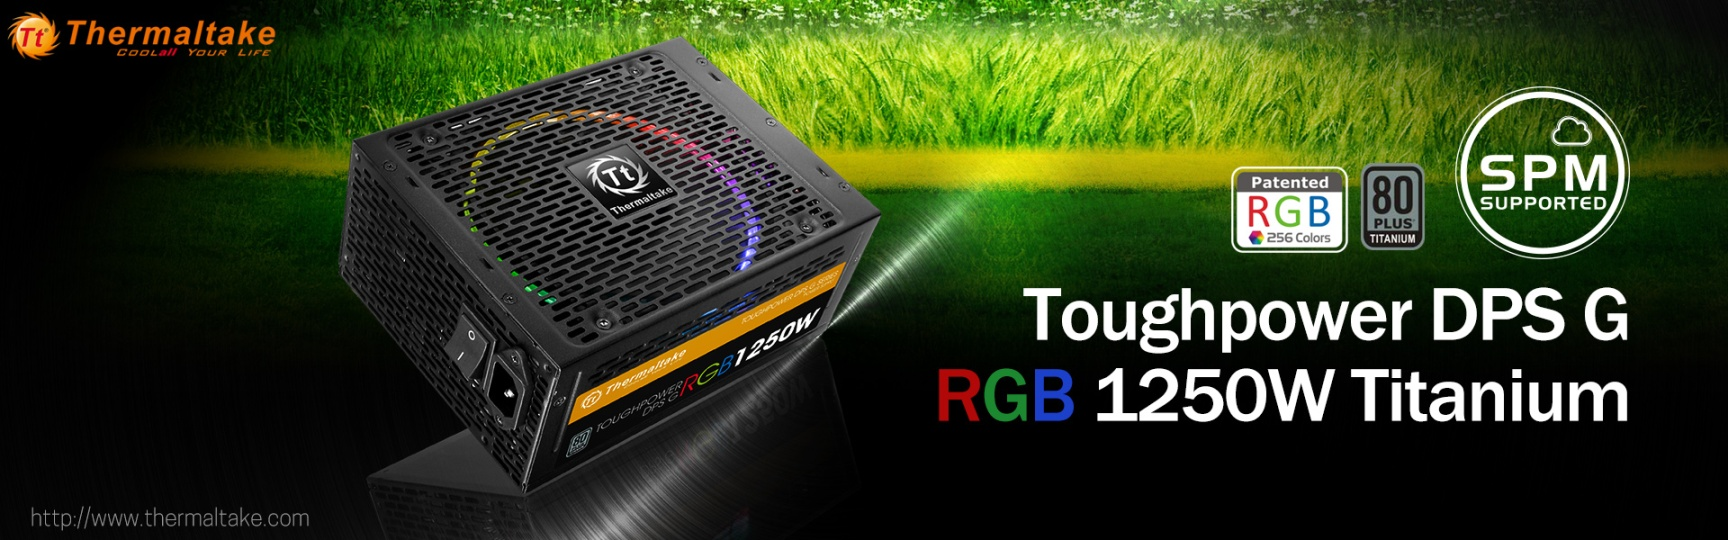 Thermaltake Toughpower DPS G RGB 1250W Titanium & SPM